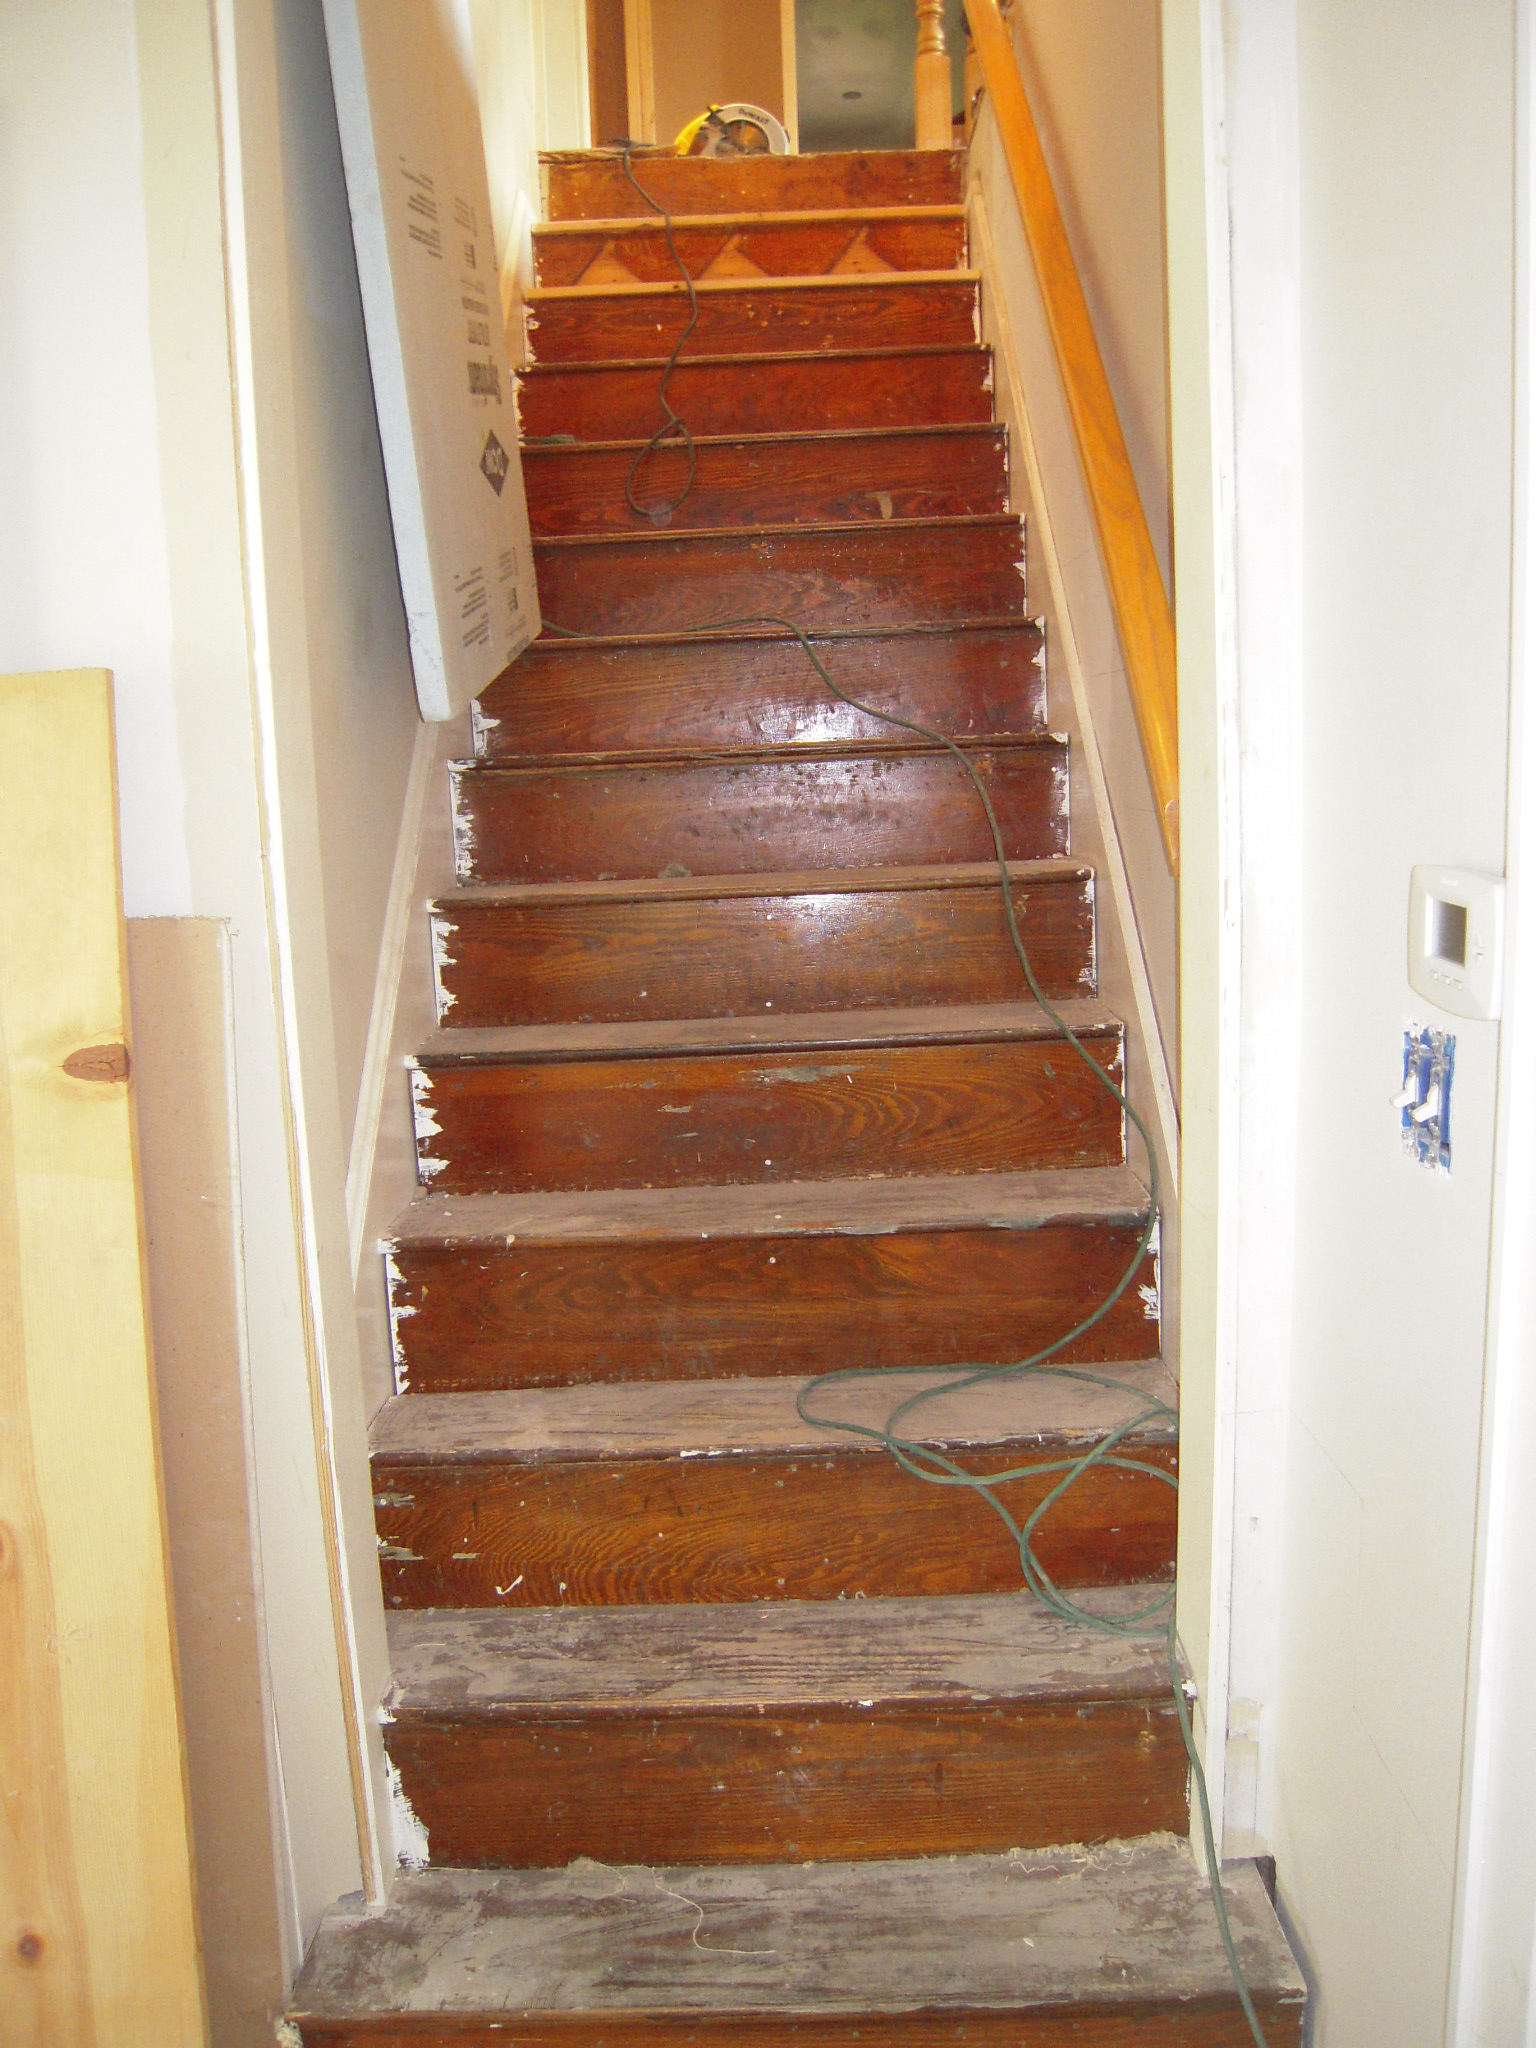 Steep wooden steps photo